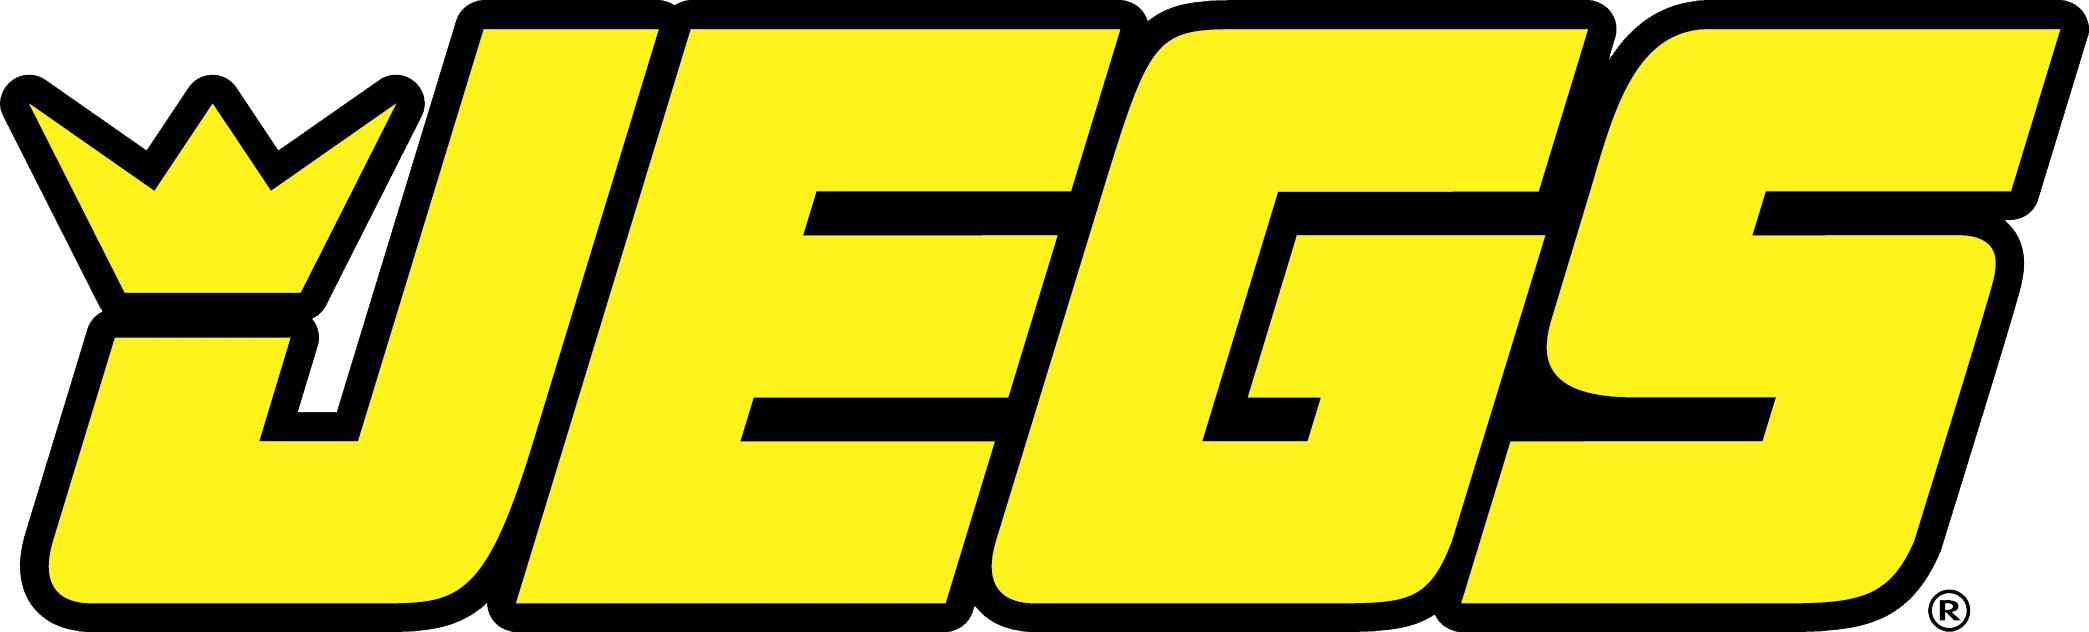 Jegs High Performance logo